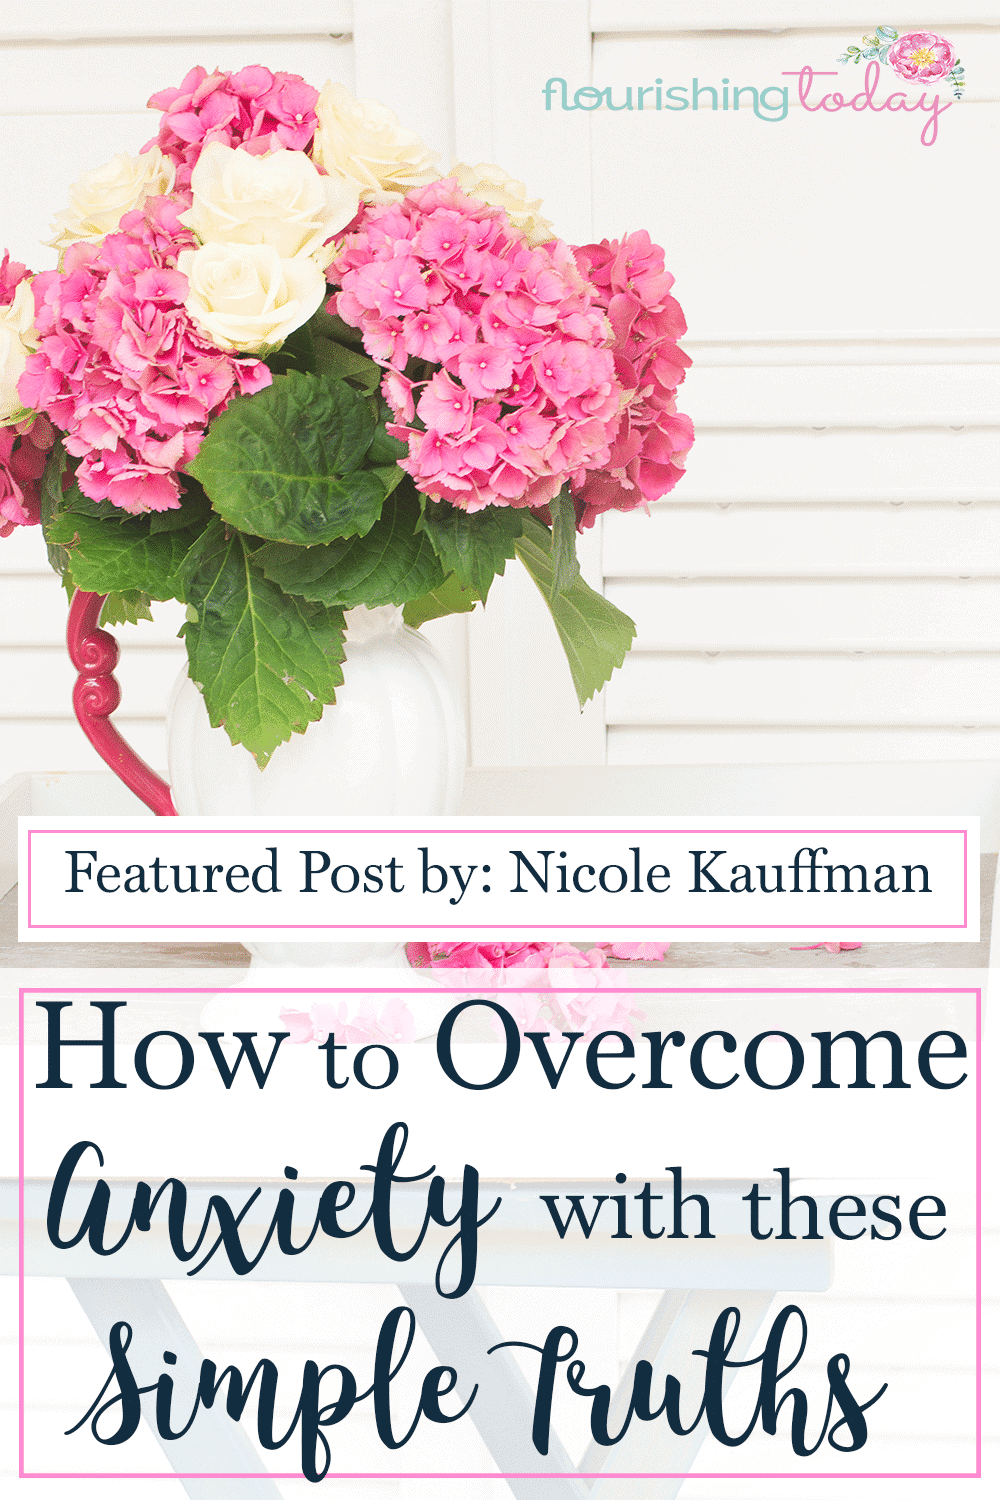 Does overcoming anxiety seem like an impossibility? You have everything you need to overcome! Here are 3 simple truths to help you overcome anxiety!